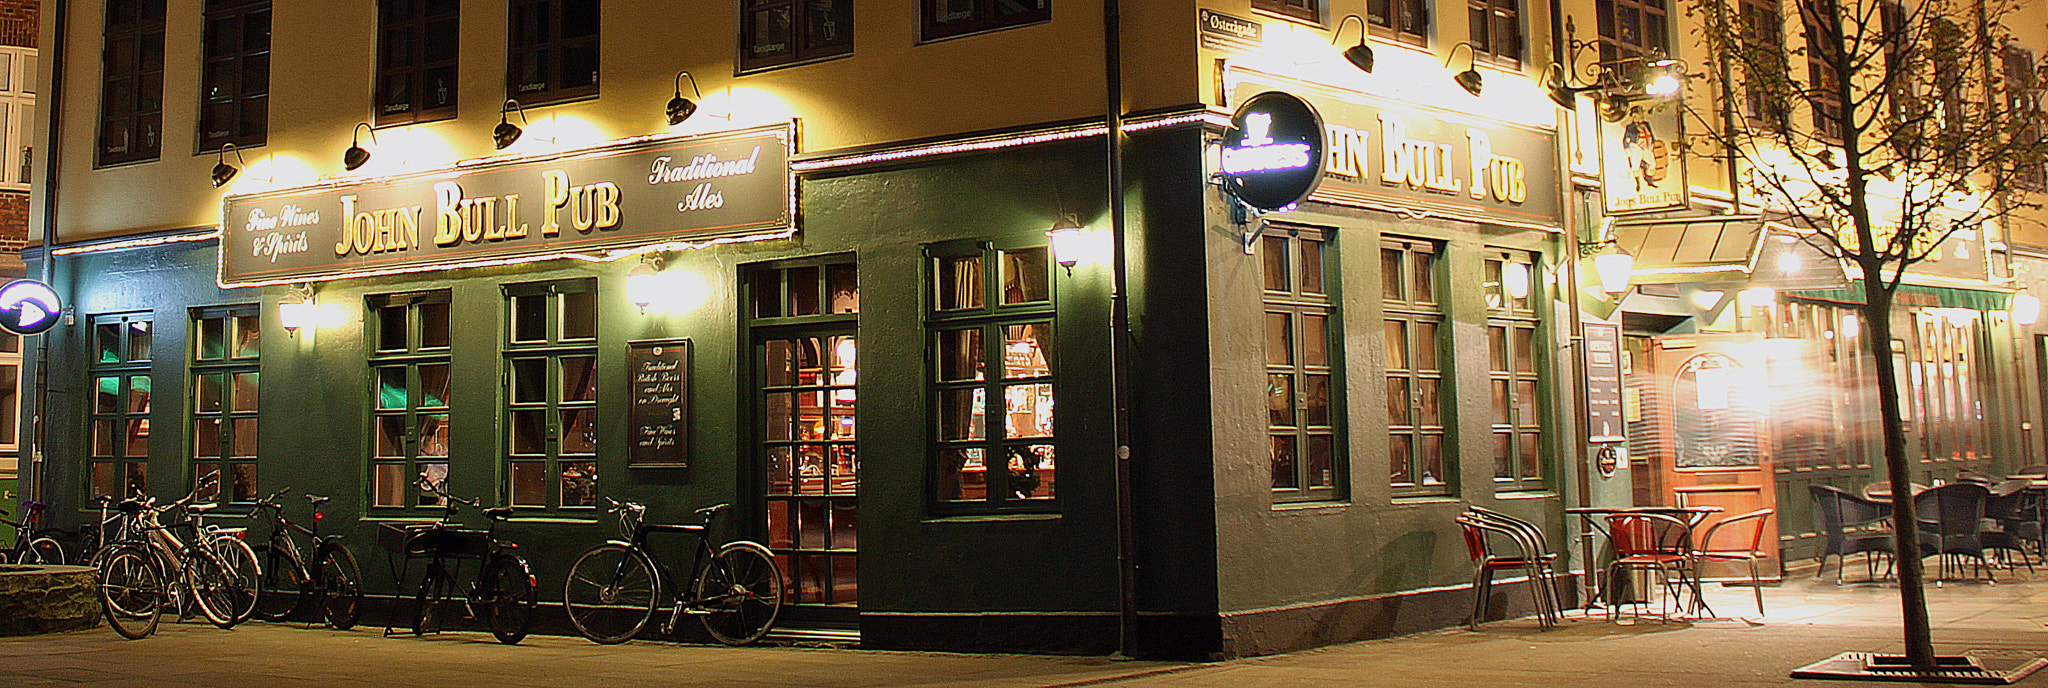 Photograph Pub by night by Nikolai Alex Petersen on 500px